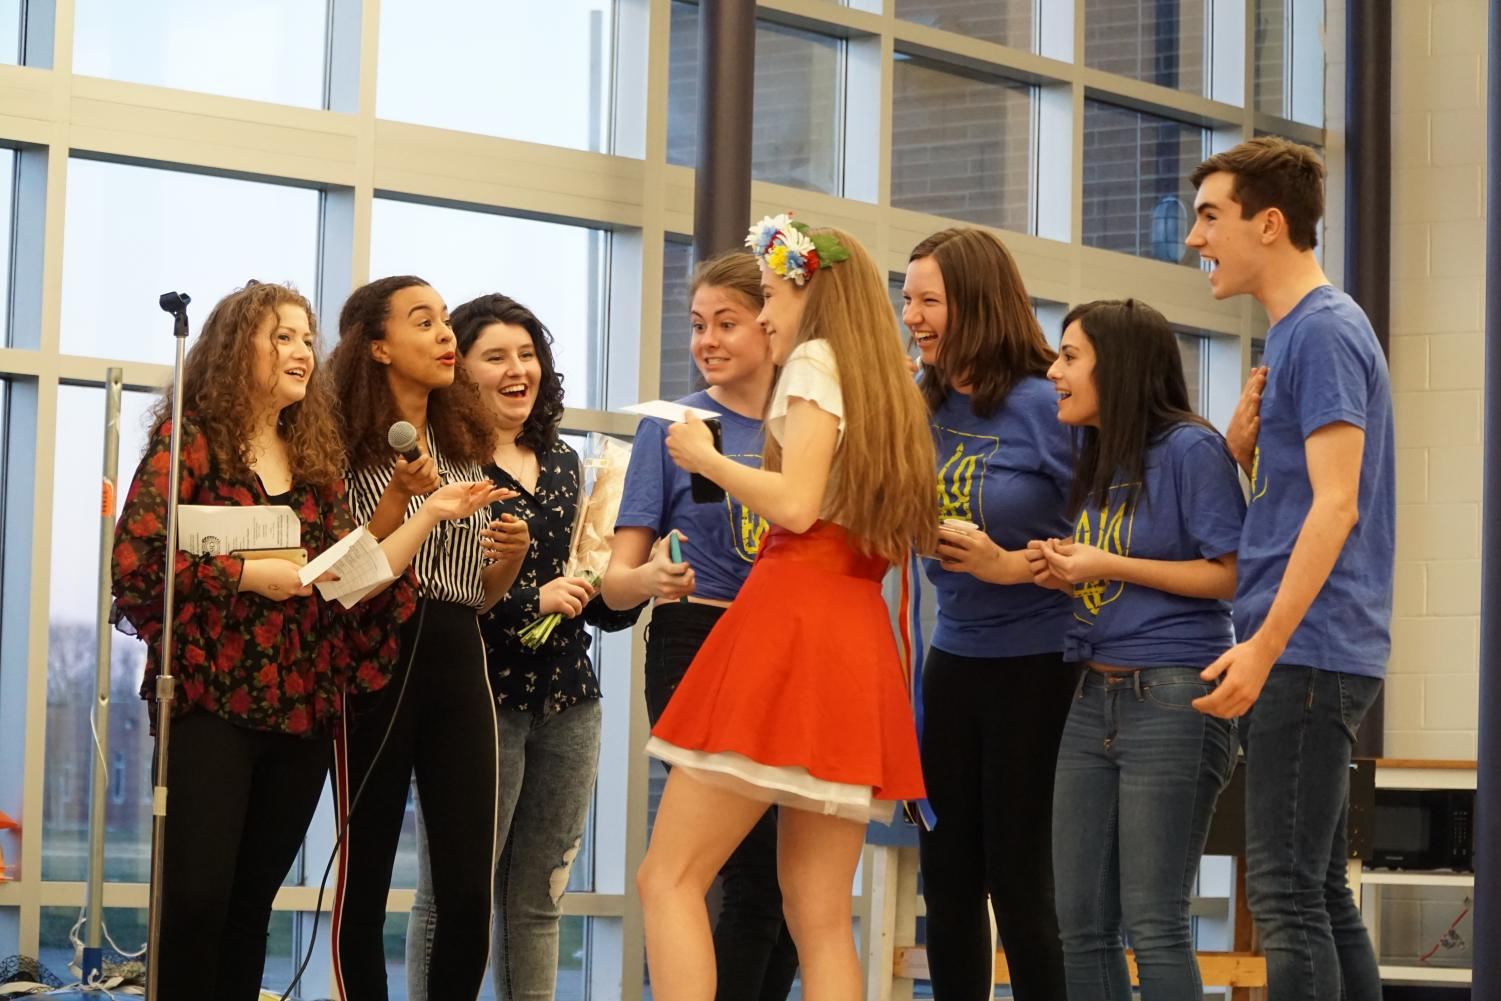 CCC council members, from left, senior Veronica Yaron of Little Silver, junior Sydney Karlin of Matawan and senior Mary Lykes of Howell announce Ukraine as the winner of the annual CCC Festival. The country comprised of five juniors, Jillian Lynch of Interlaken, Erica Sammarco of Colts Neck, Grace McCaffrey of Middletown, Alexis Colucci of Middletown and Connor Martin of Spring Lake Heights.